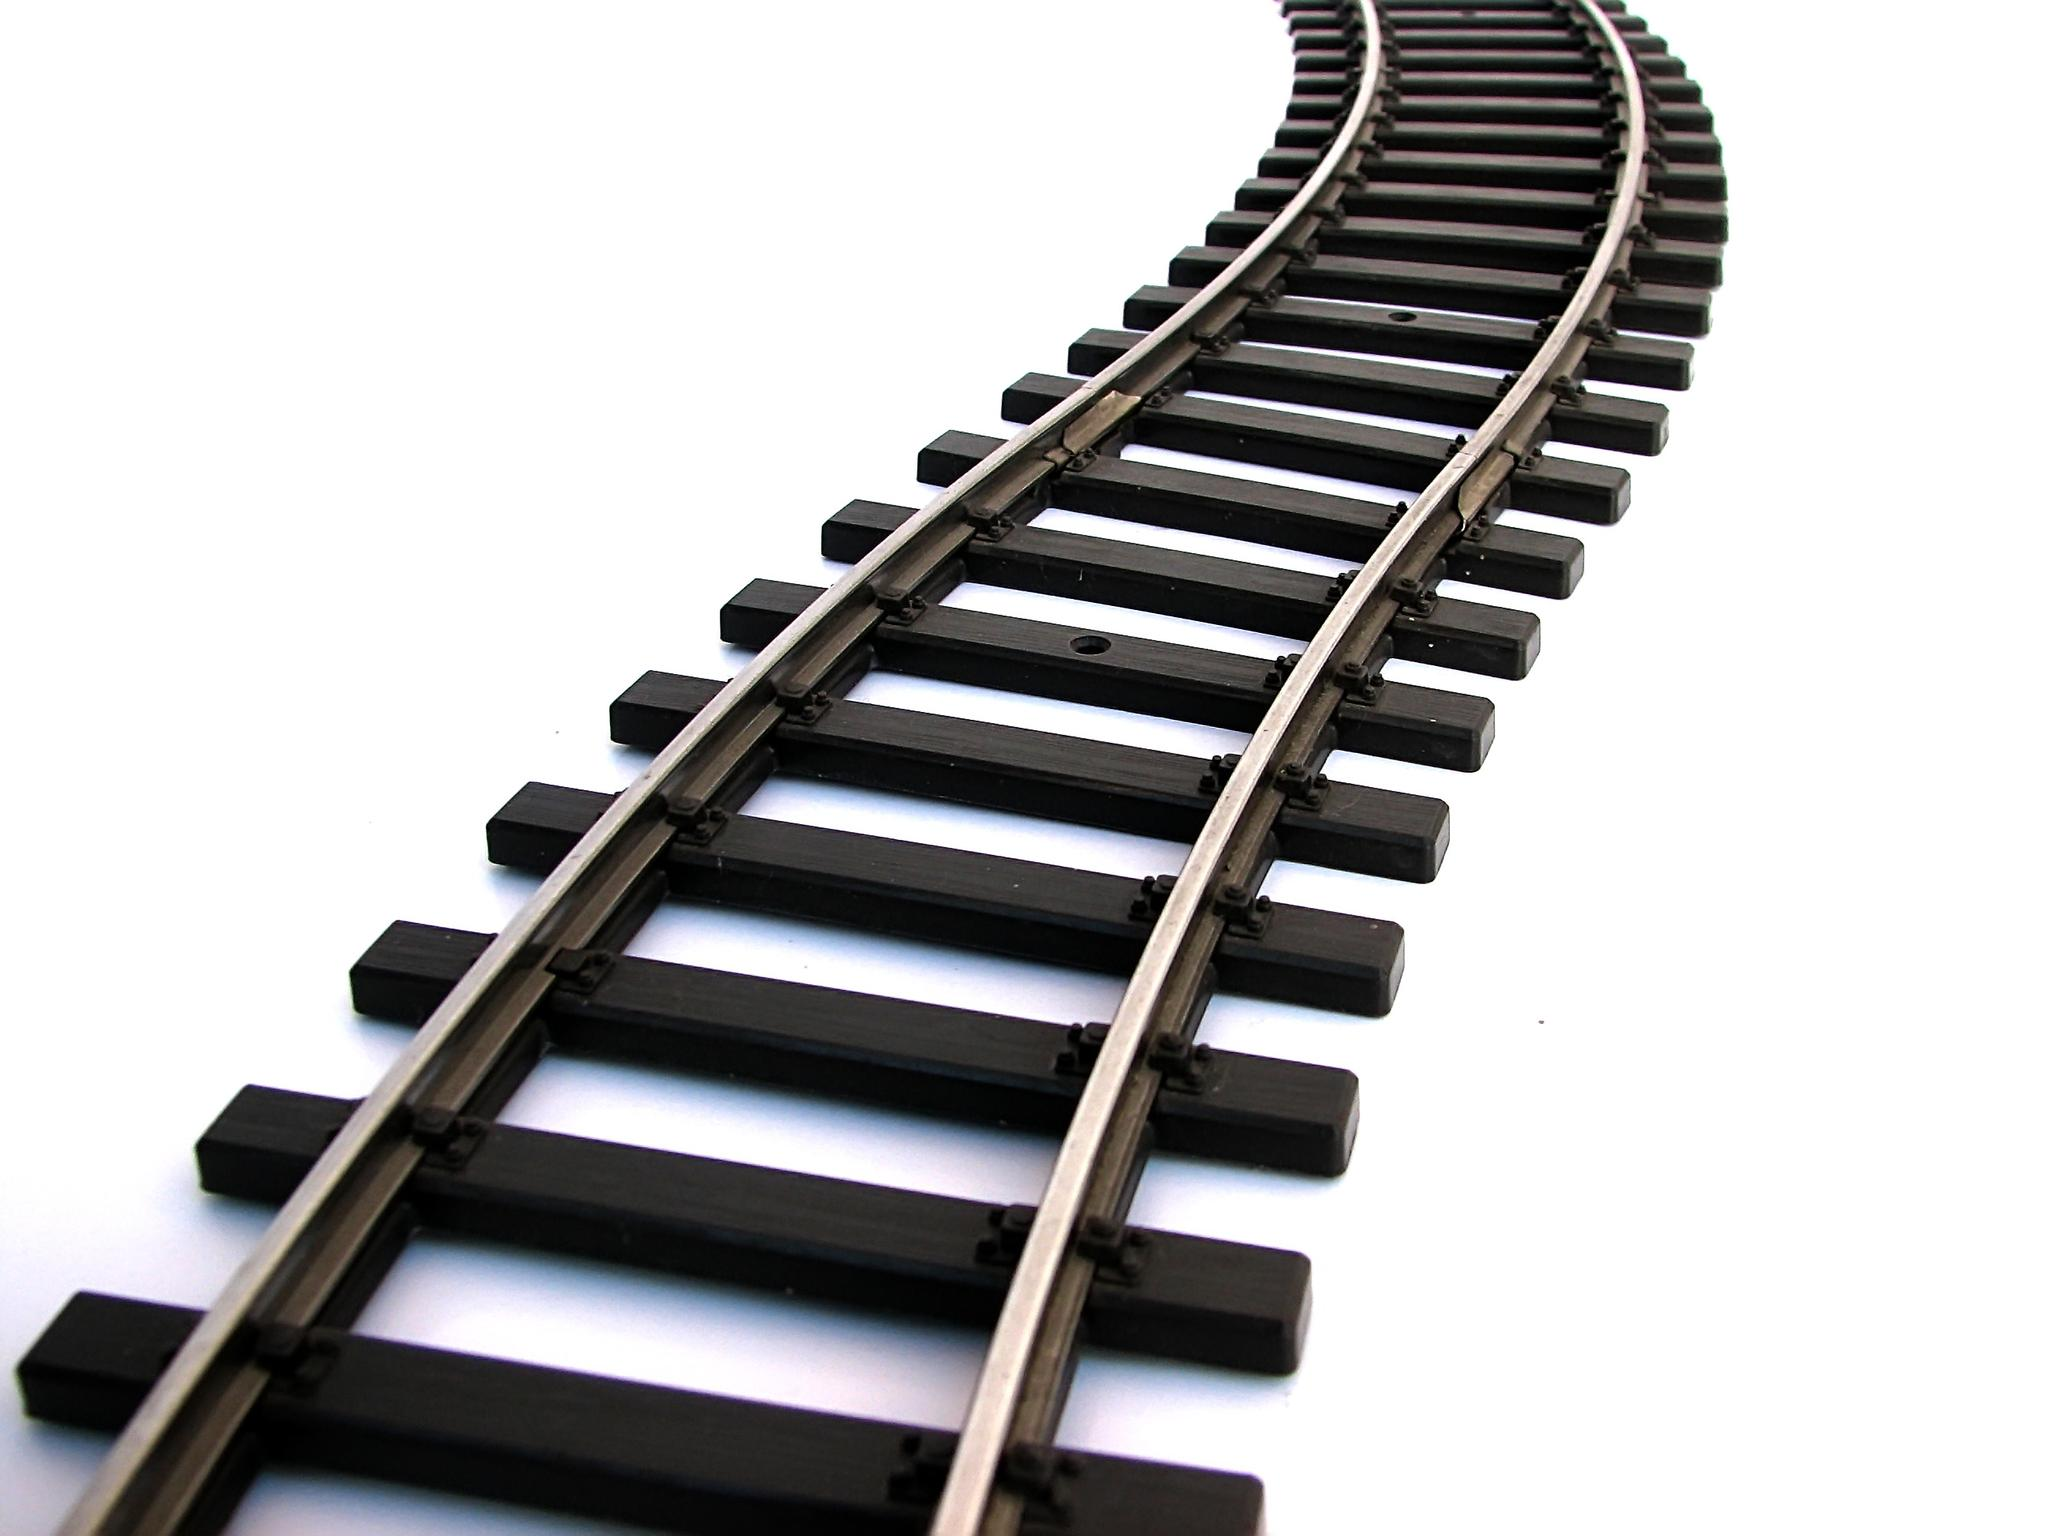 2048x1536 Train Railroad Tracks Clip Art